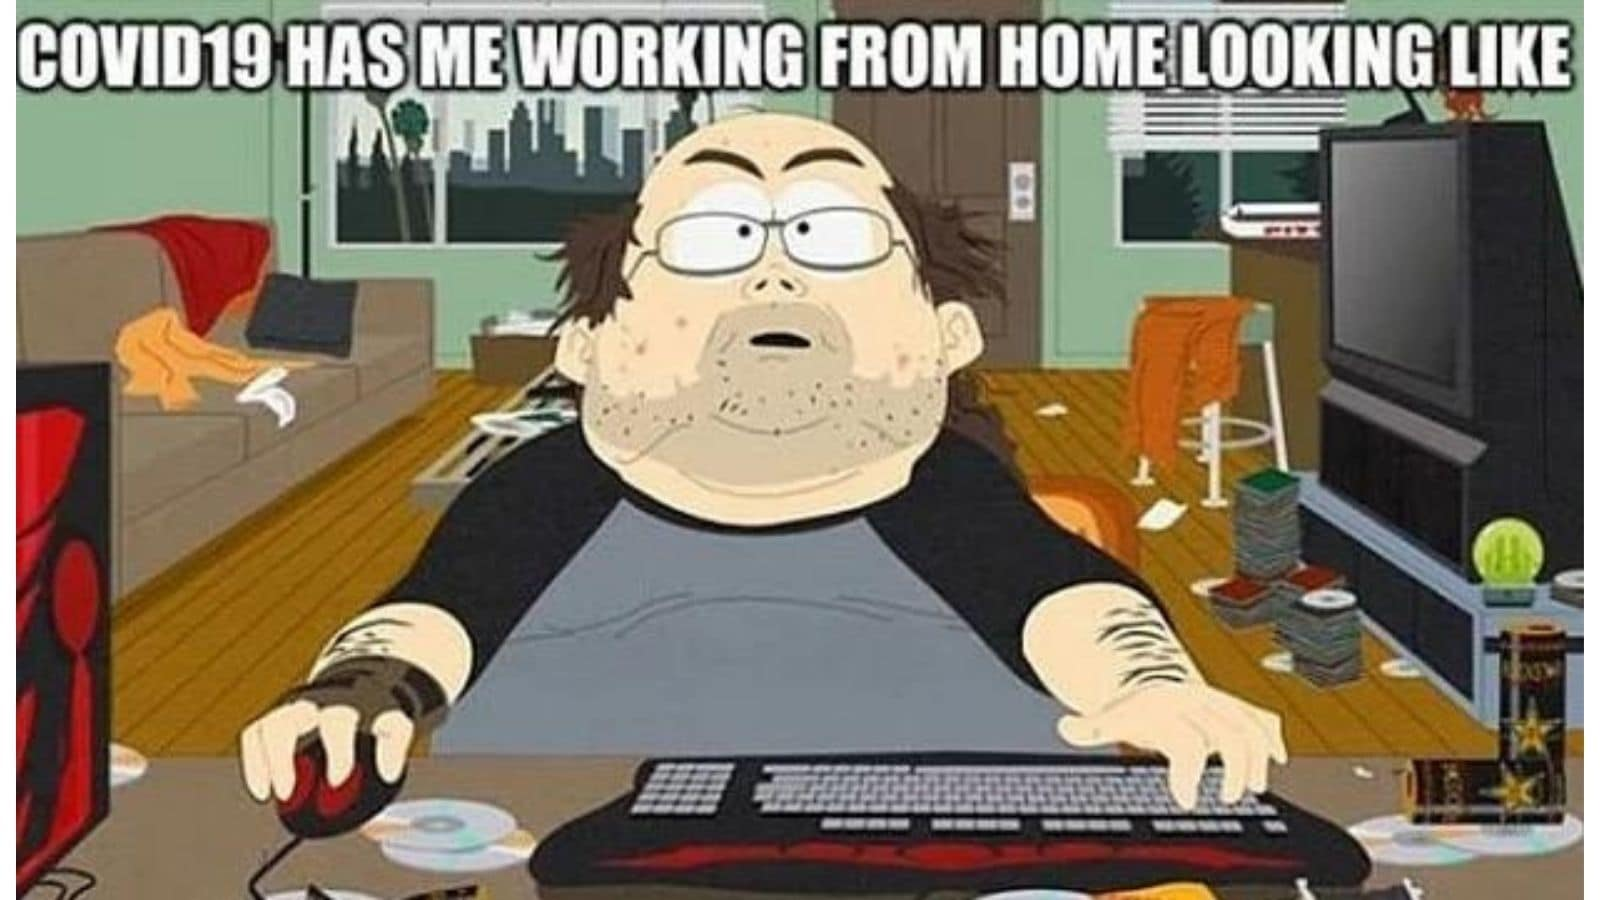 Work from home meme